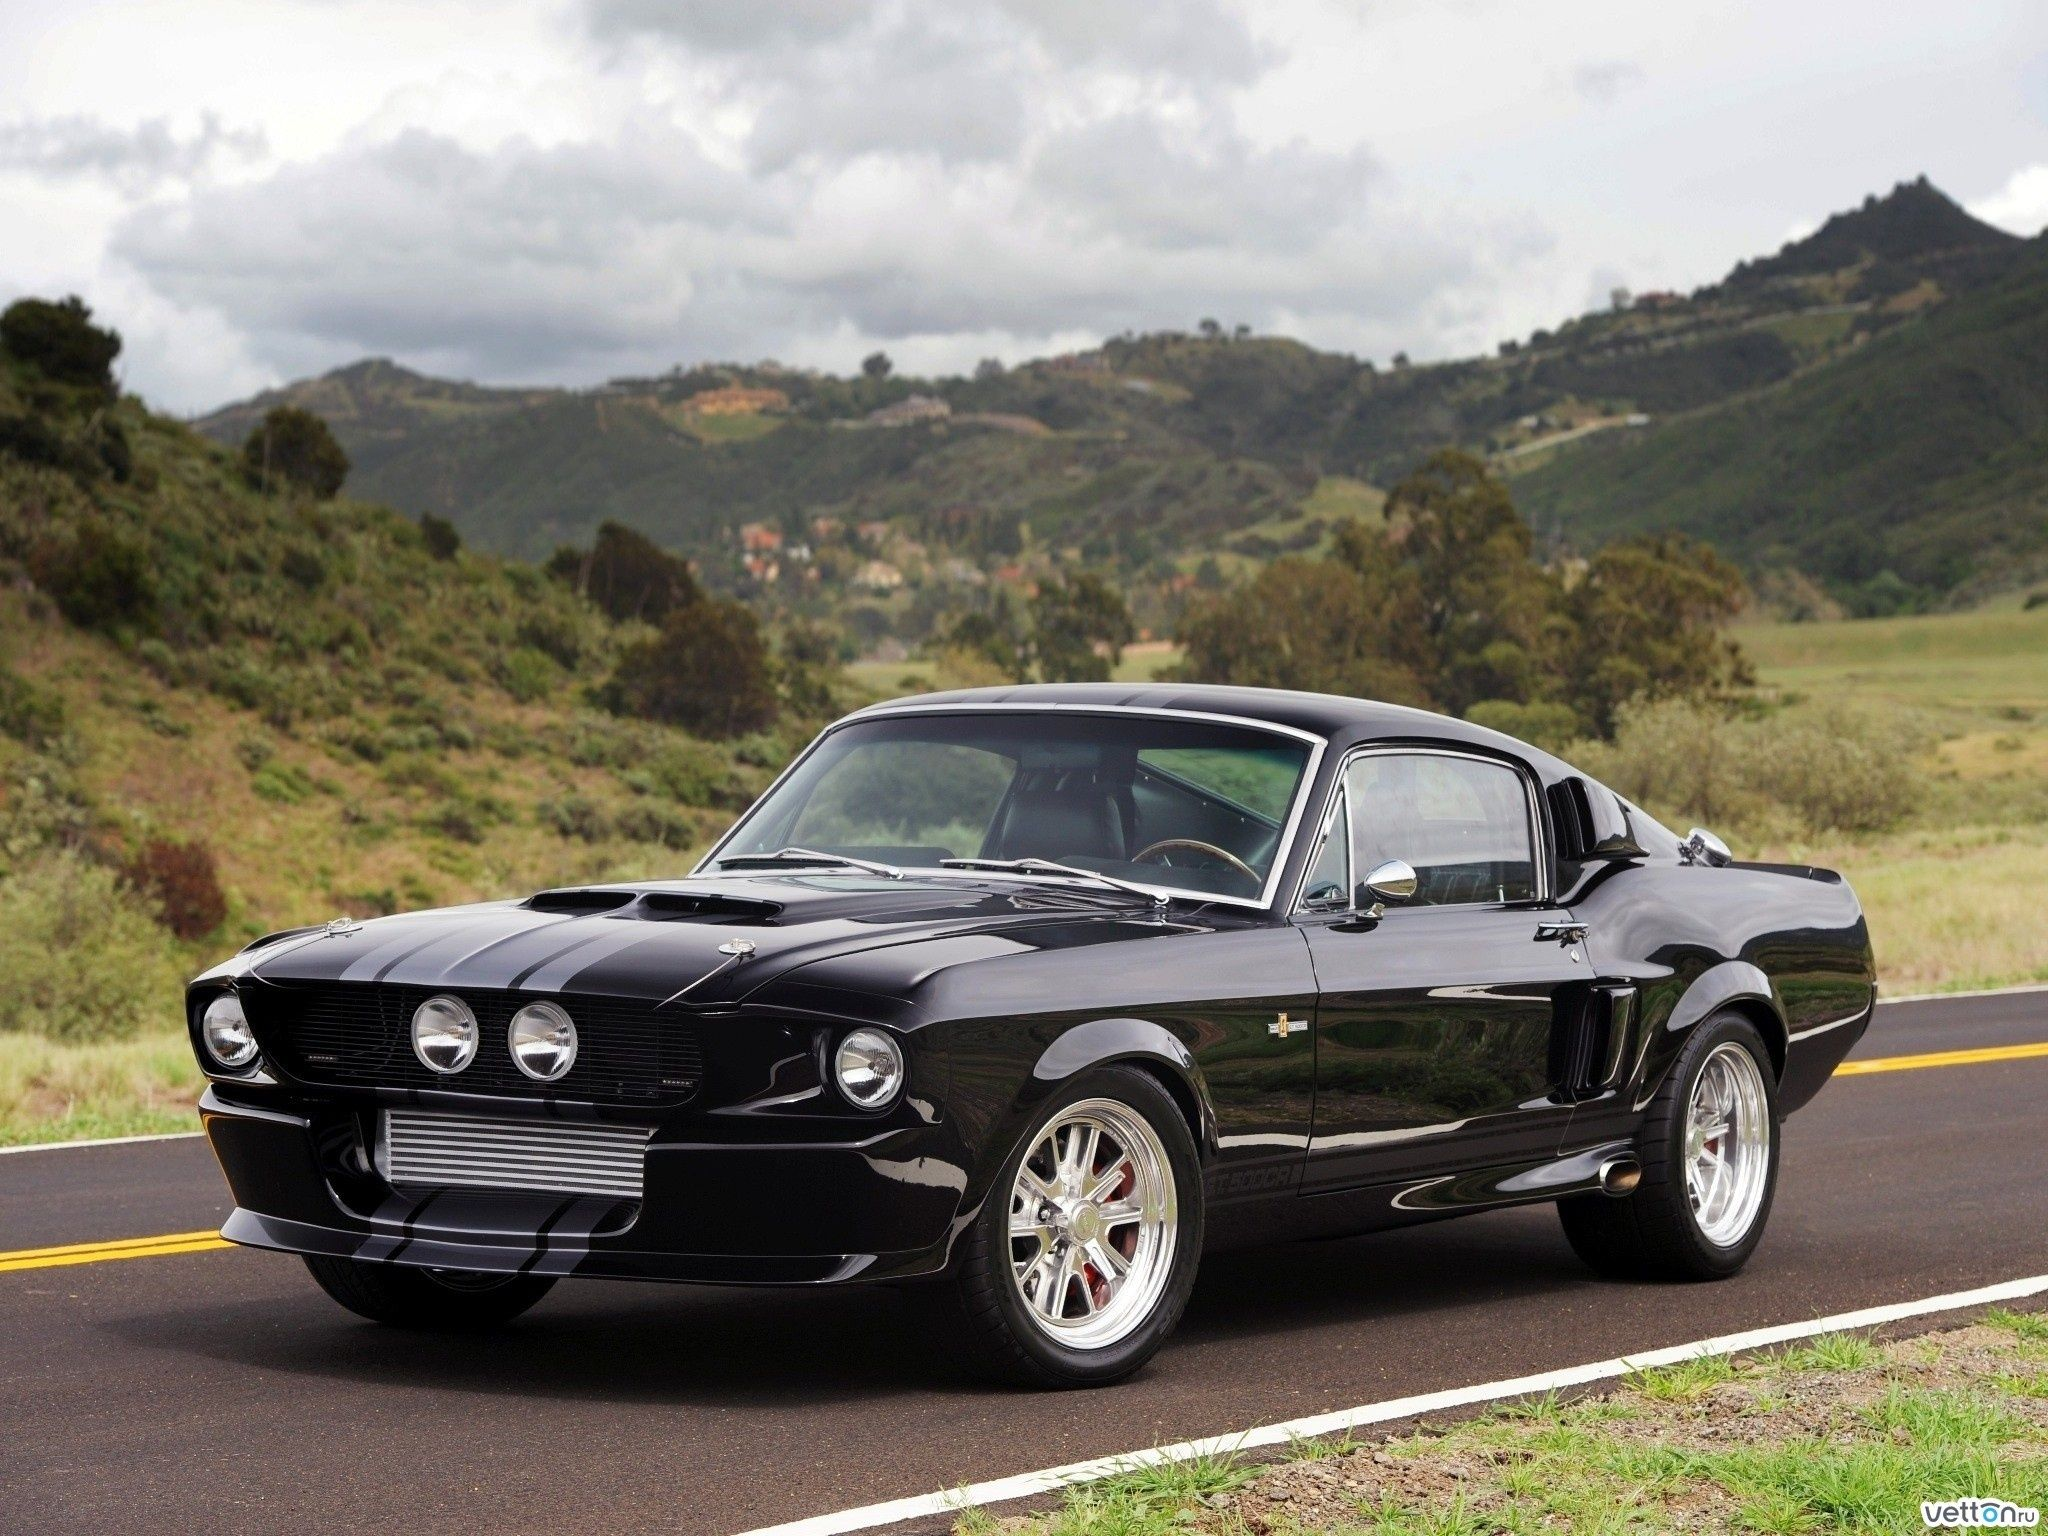 Ford Mustang Gt350 Black Aggressive Rear Vents Great Mask